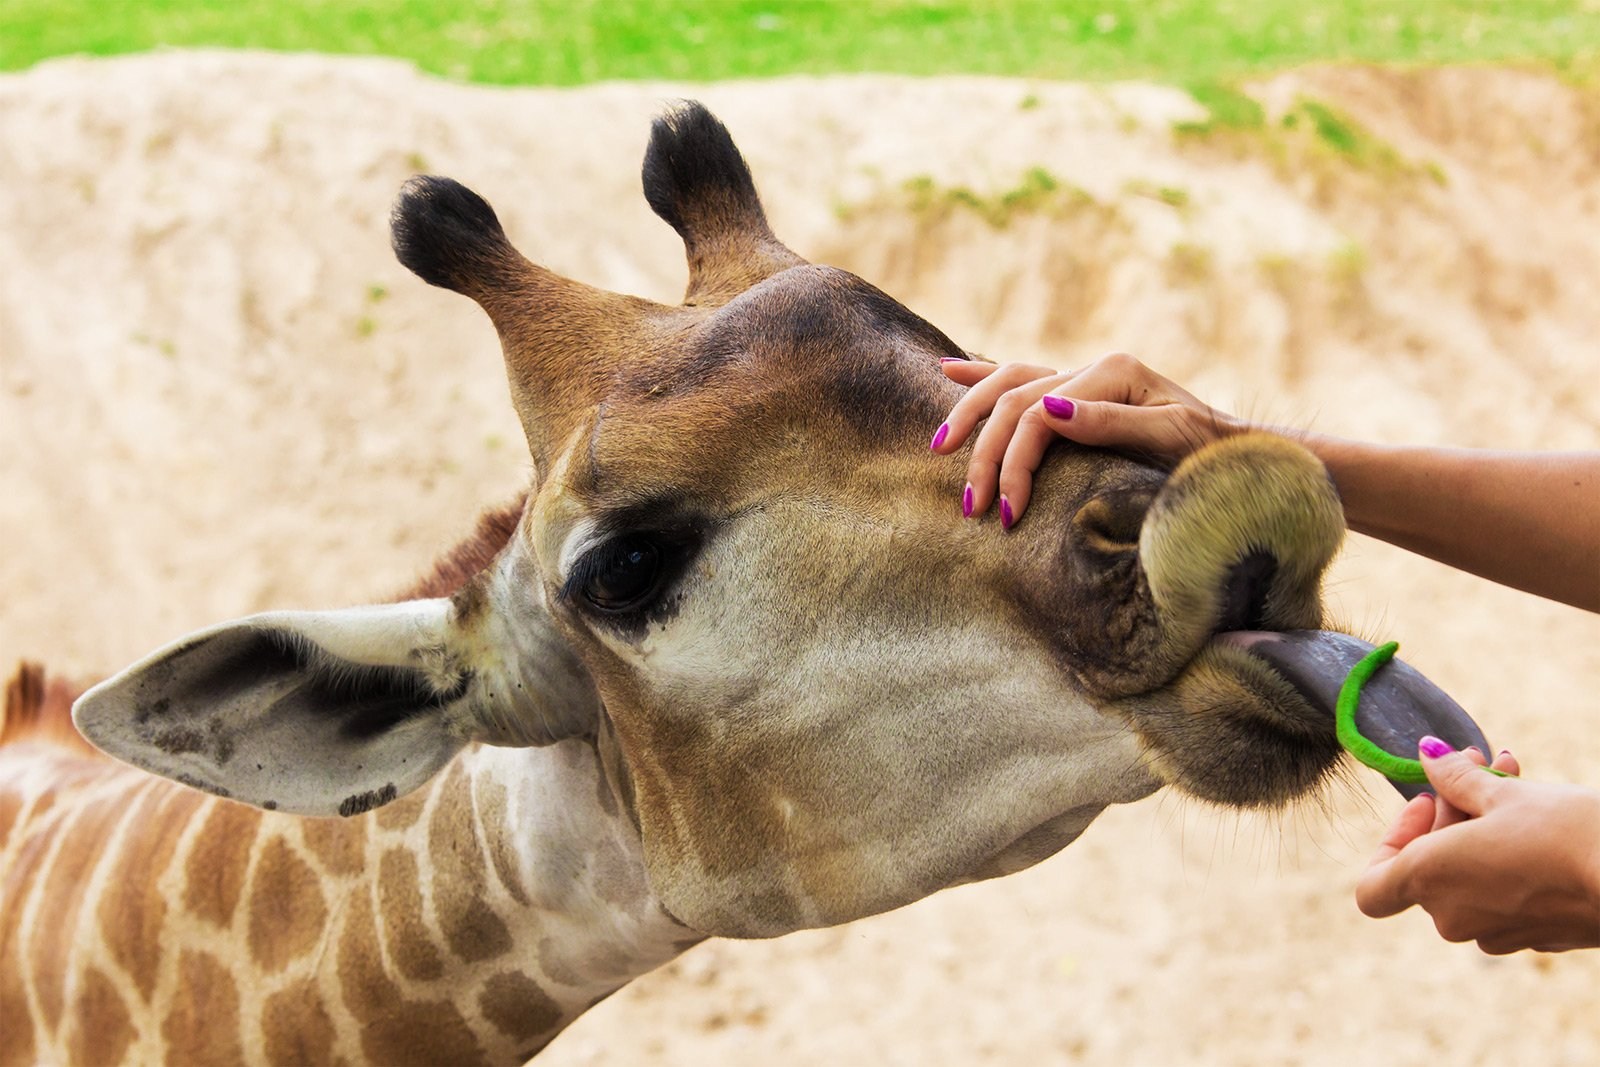 How to feed giraffes in Al Ain